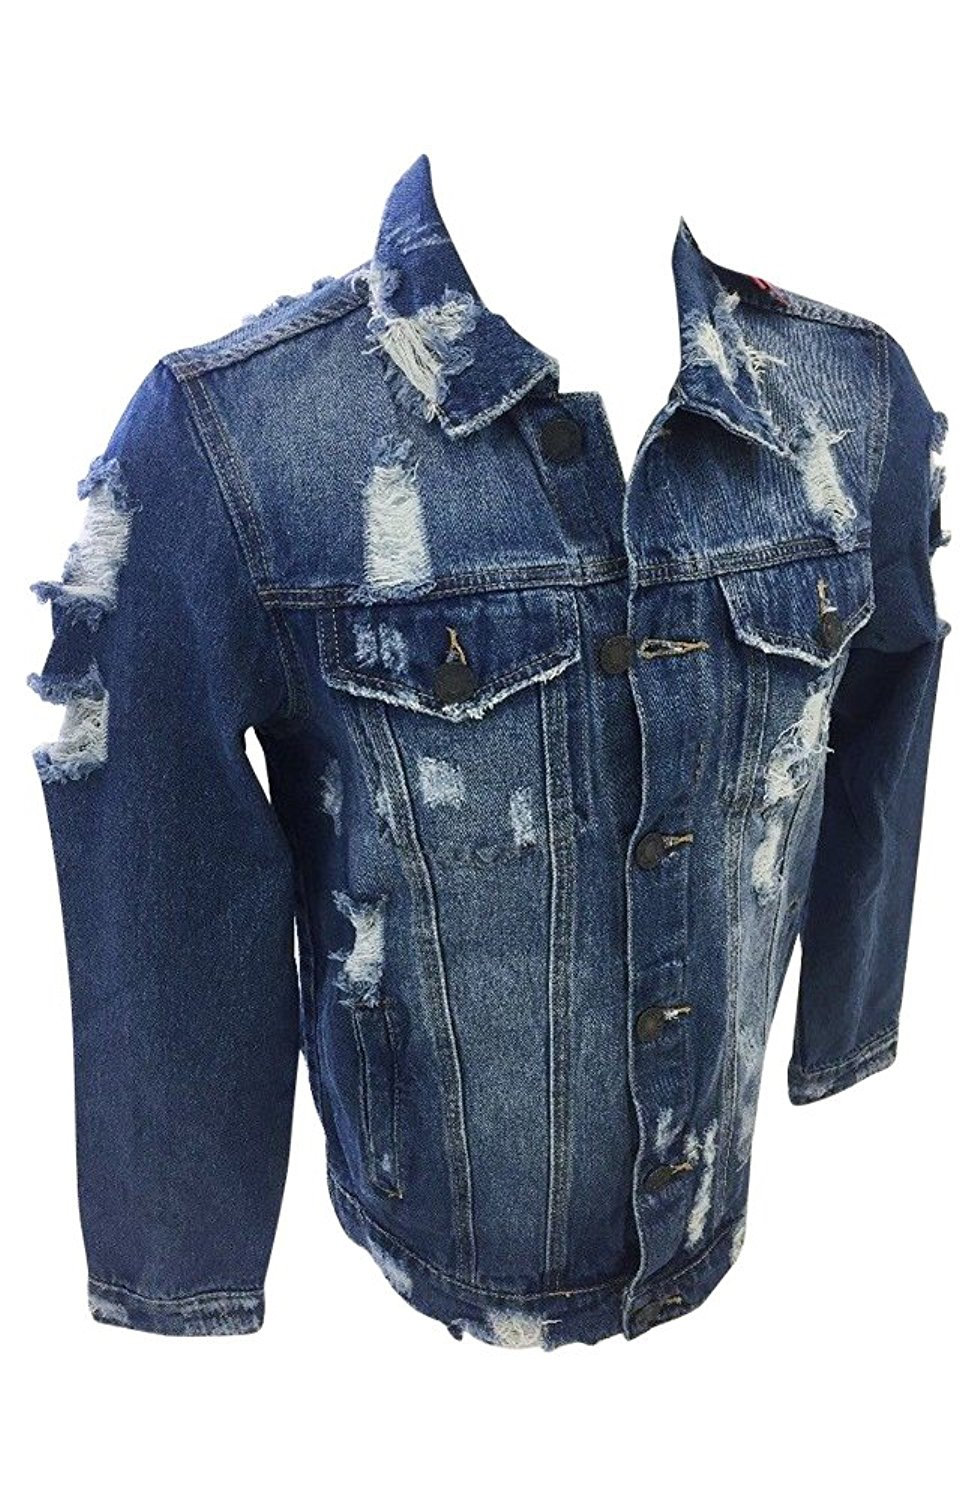 0ac0fcb137a Get Quotations · Mens Victorious Denim Jean Jacket Dark Indigo Blue Vintage  Distressed Wash DK100